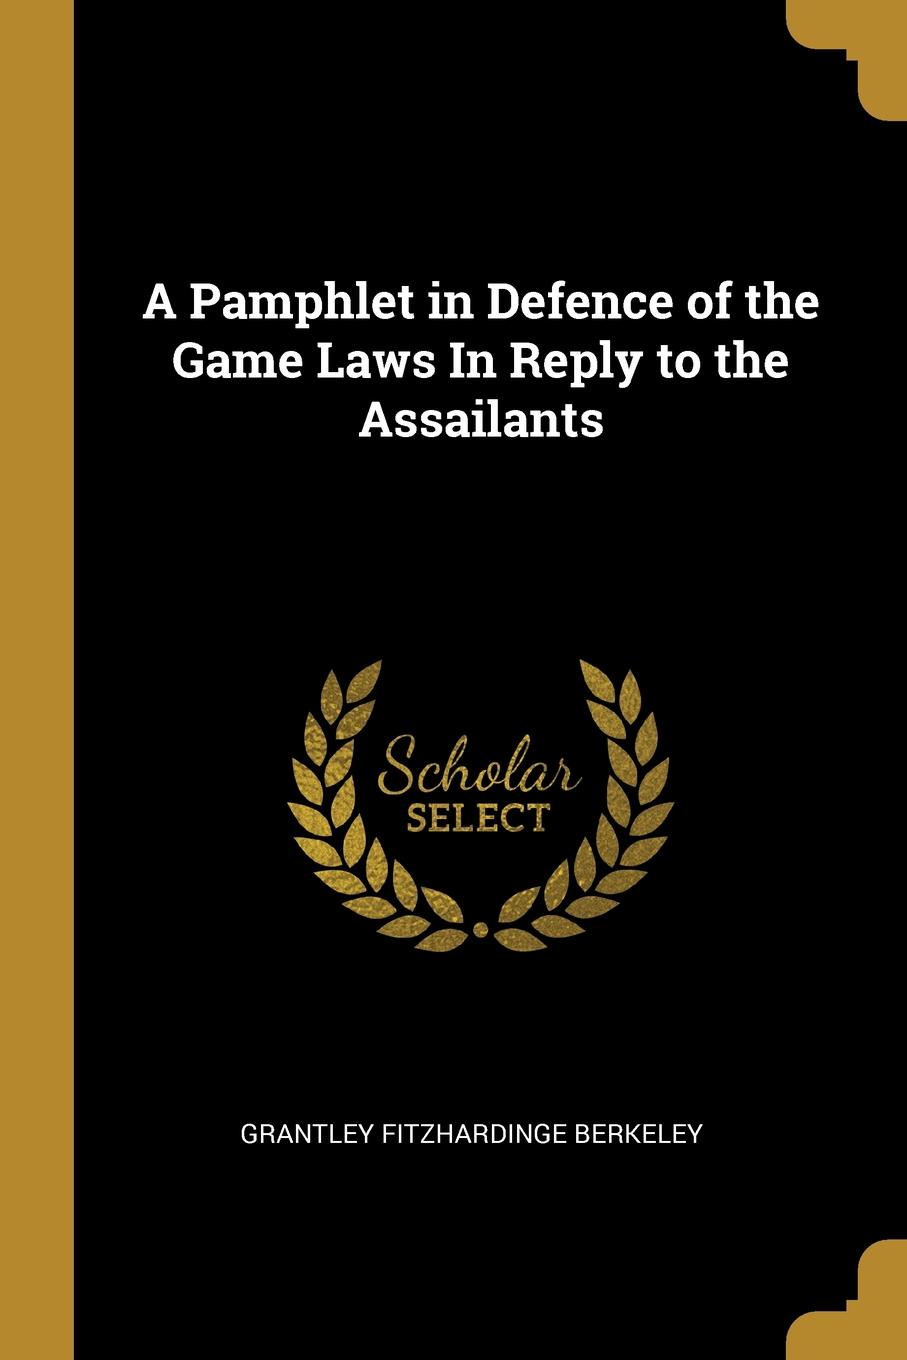 Grantley Fitzhardinge Berkeley. A Pamphlet in Defence of the Game Laws In Reply to the Assailants